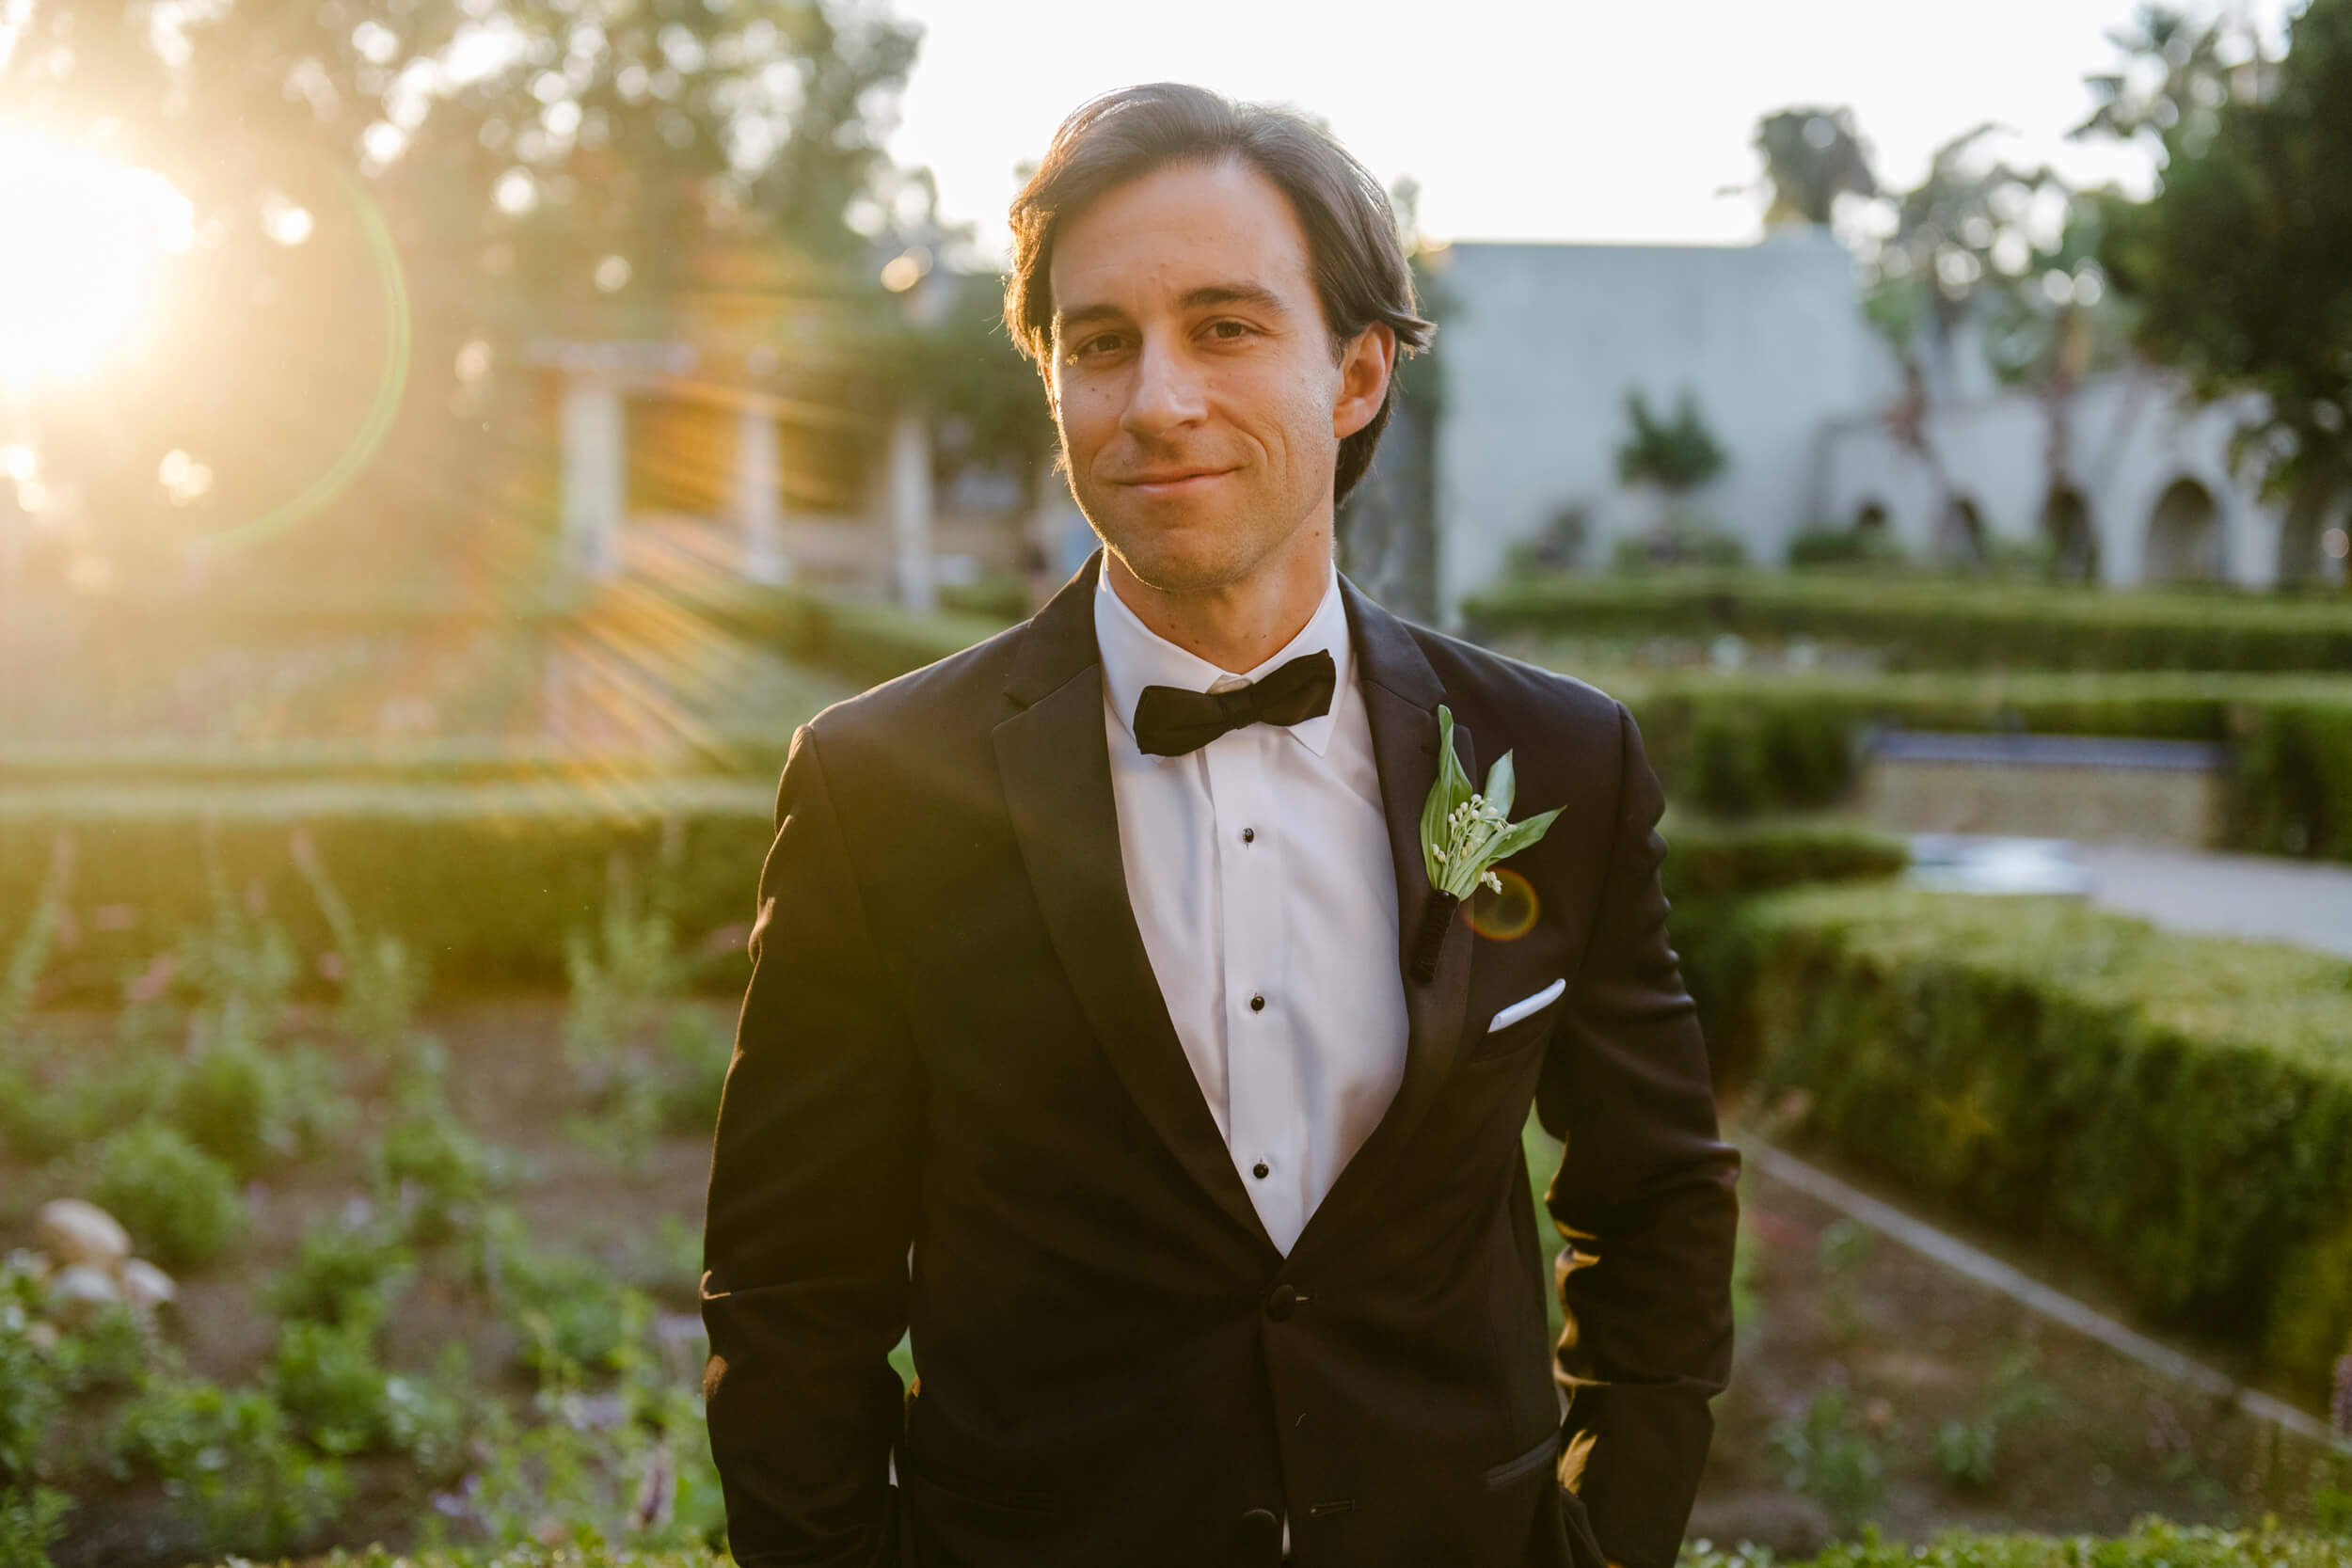 groom in tuxedo portrait at sunset in alcazar gardens